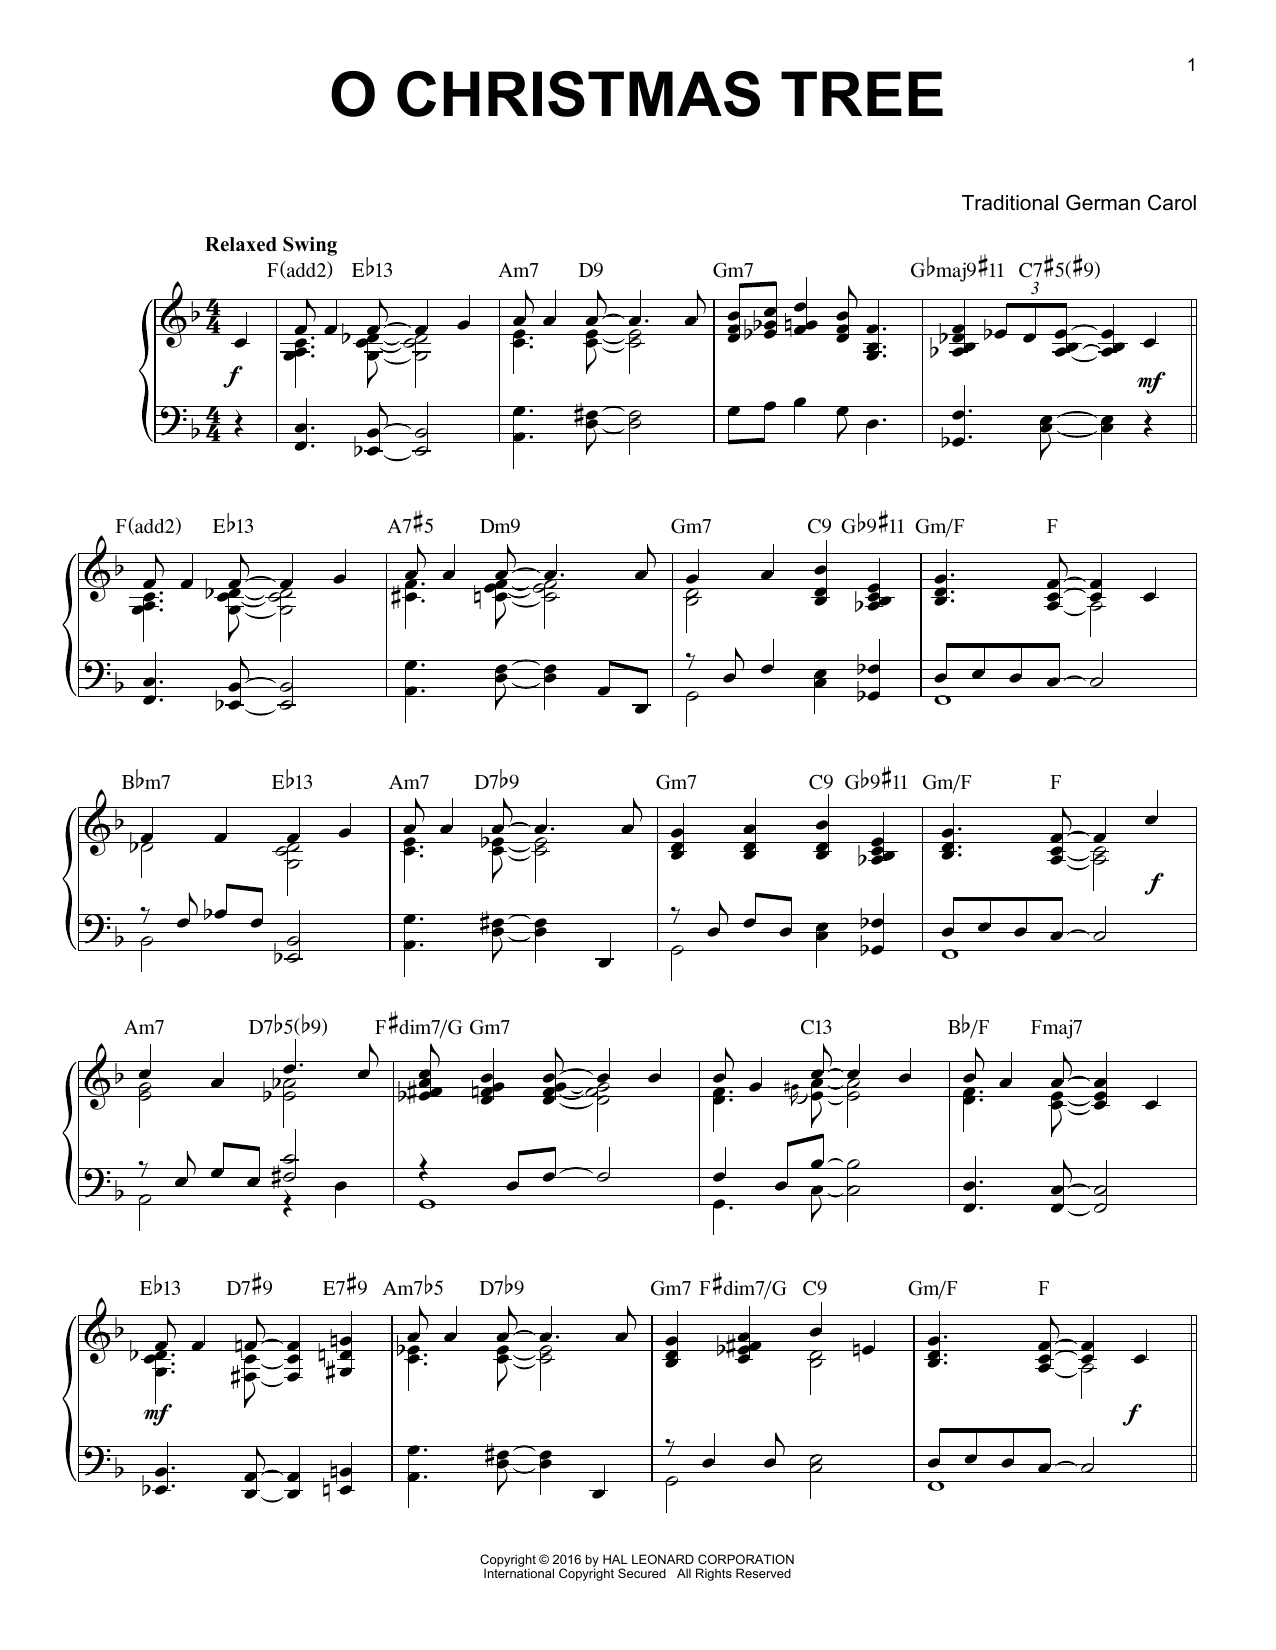 Traditional German Carol O Christmas Tree [Jazz version] (arr. Brent Edstrom) sheet music notes and chords. Download Printable PDF.